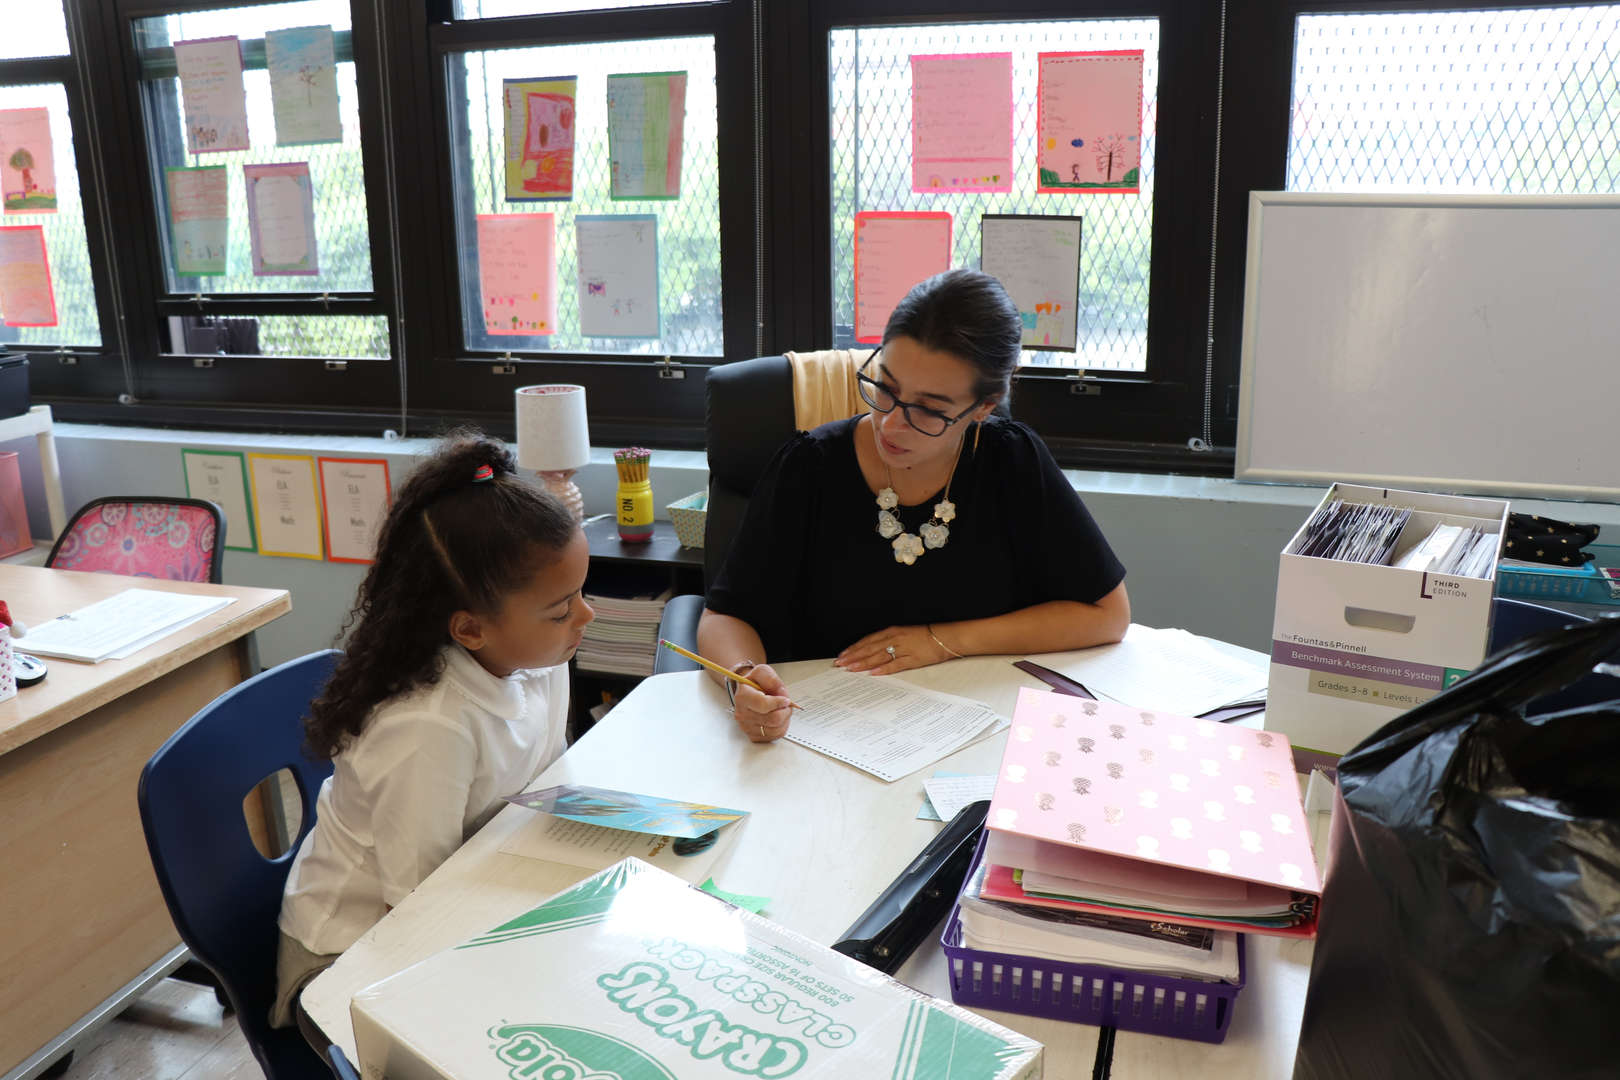 Ms. Parrino working one to one with a student.